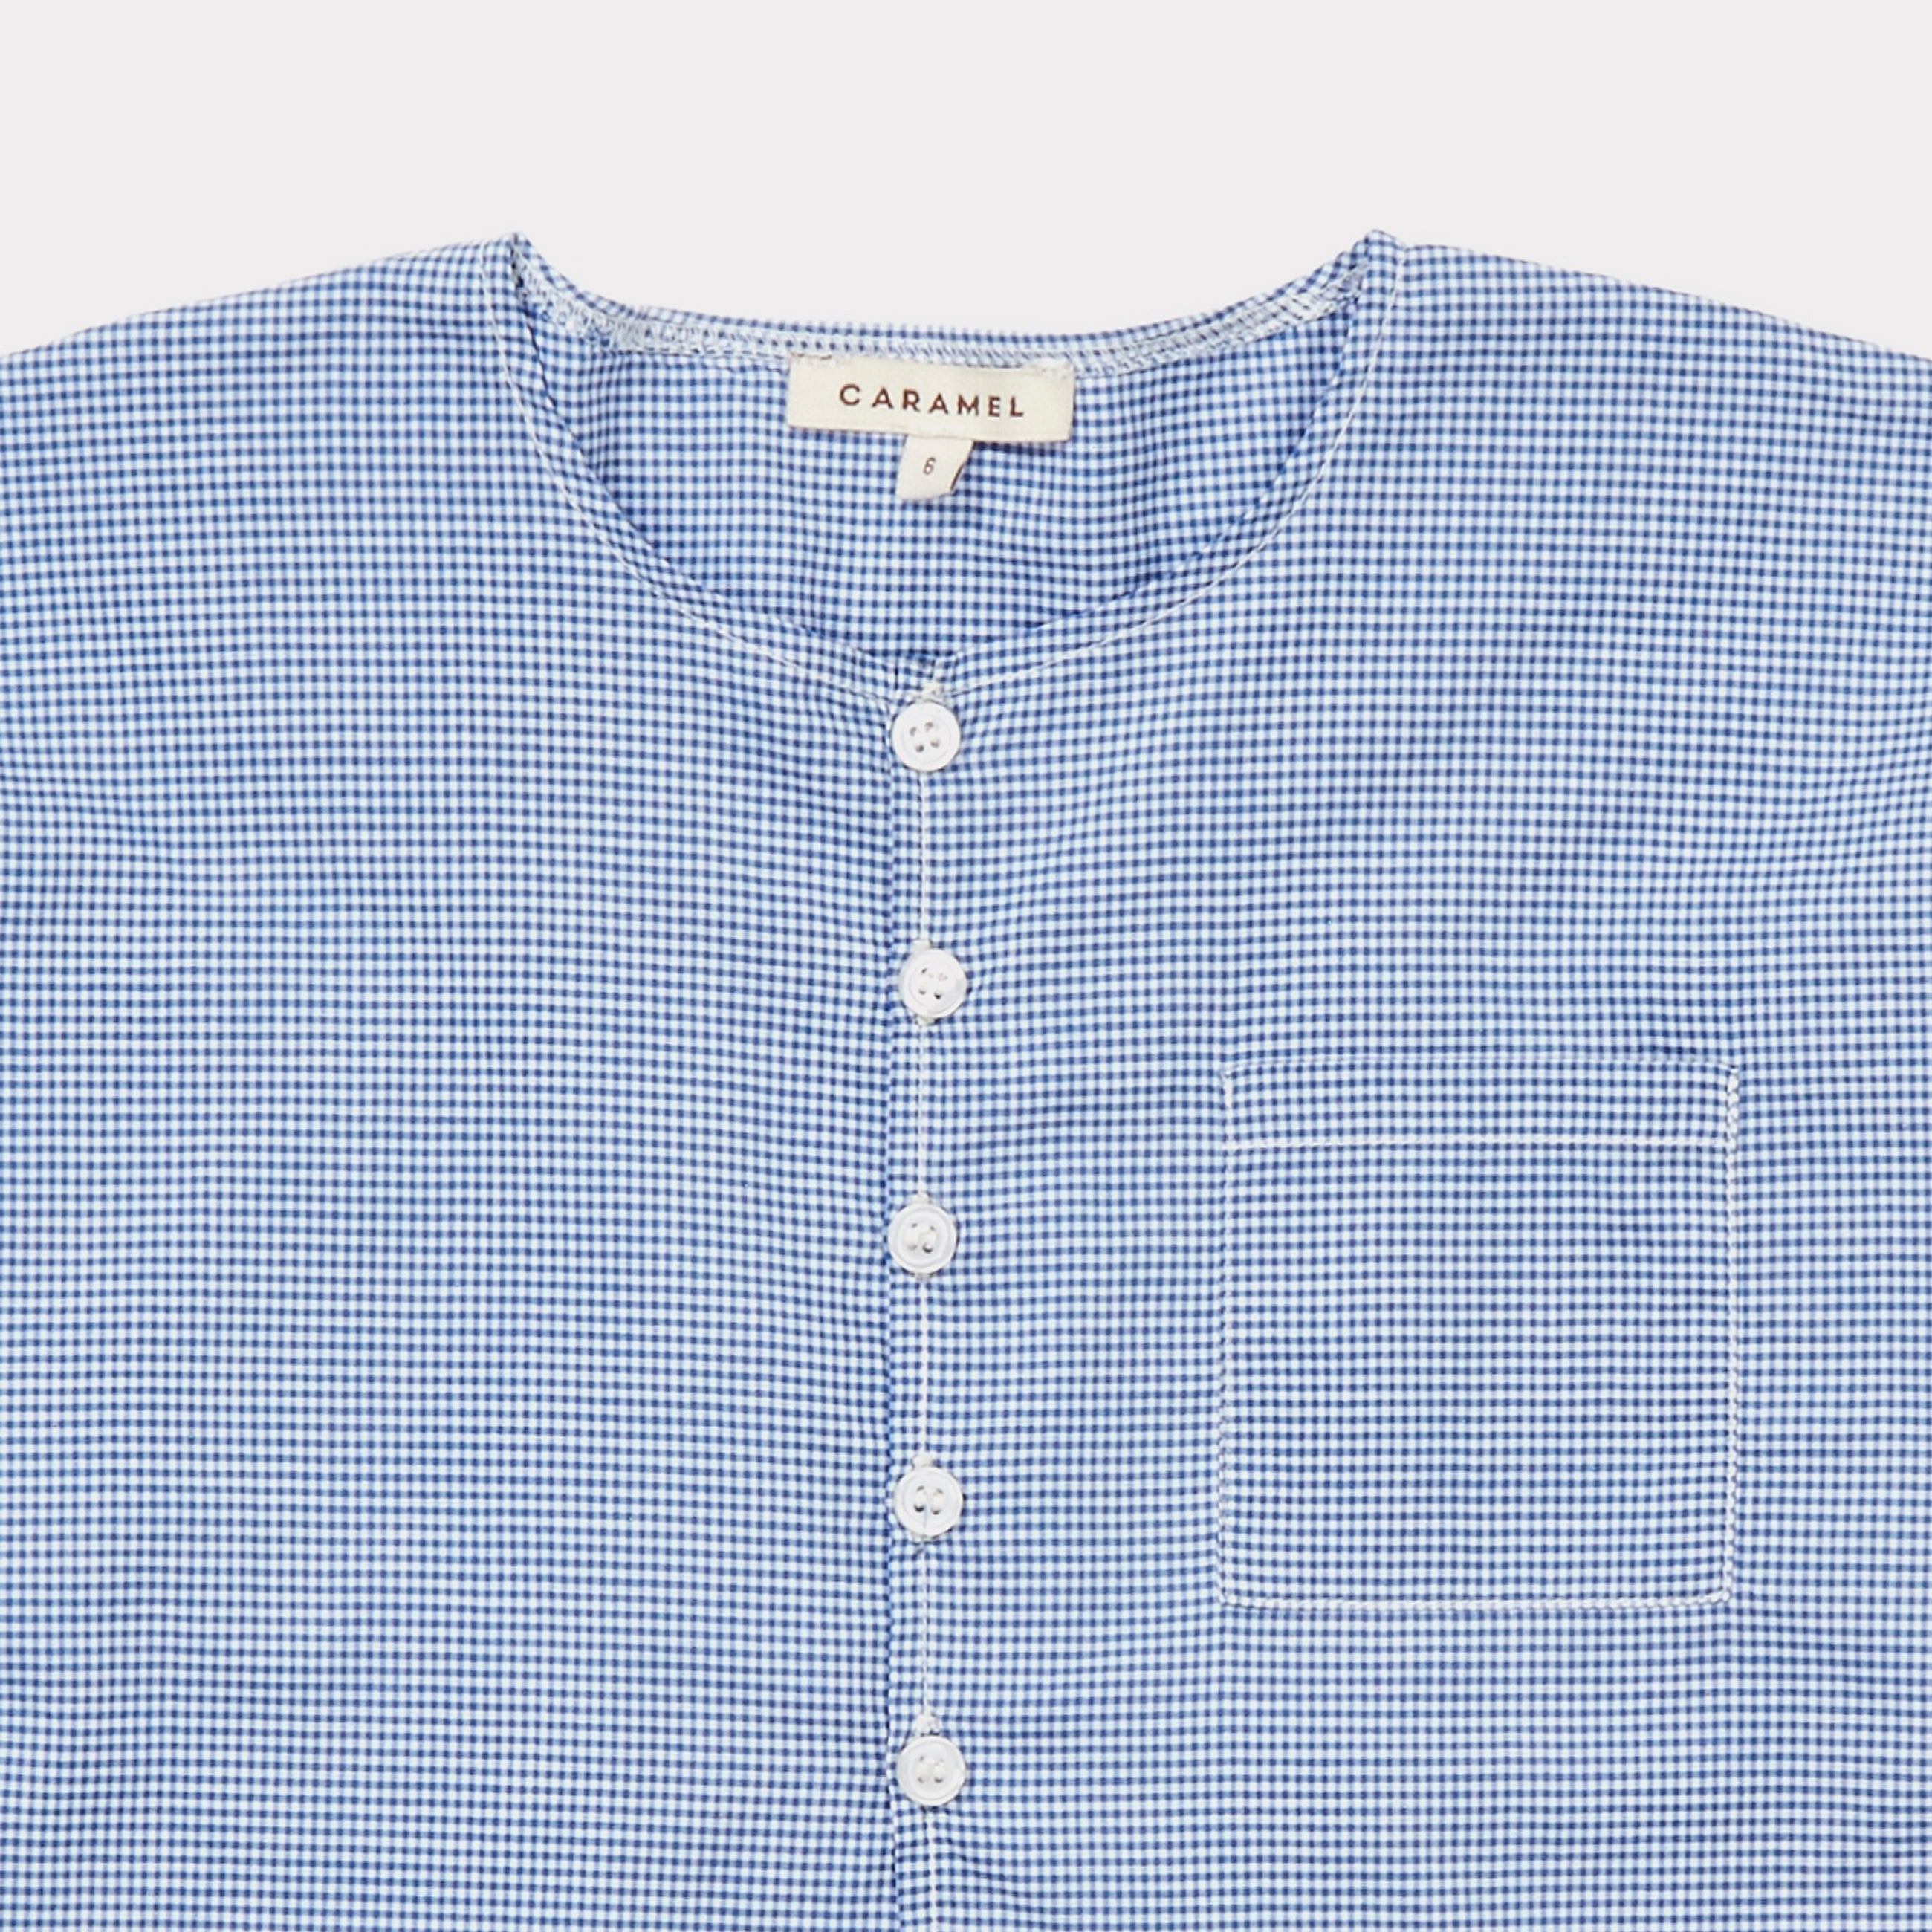 Caramel London Billy Kid Shirt in Gingham Blue Microcheck | BIEN BIEN